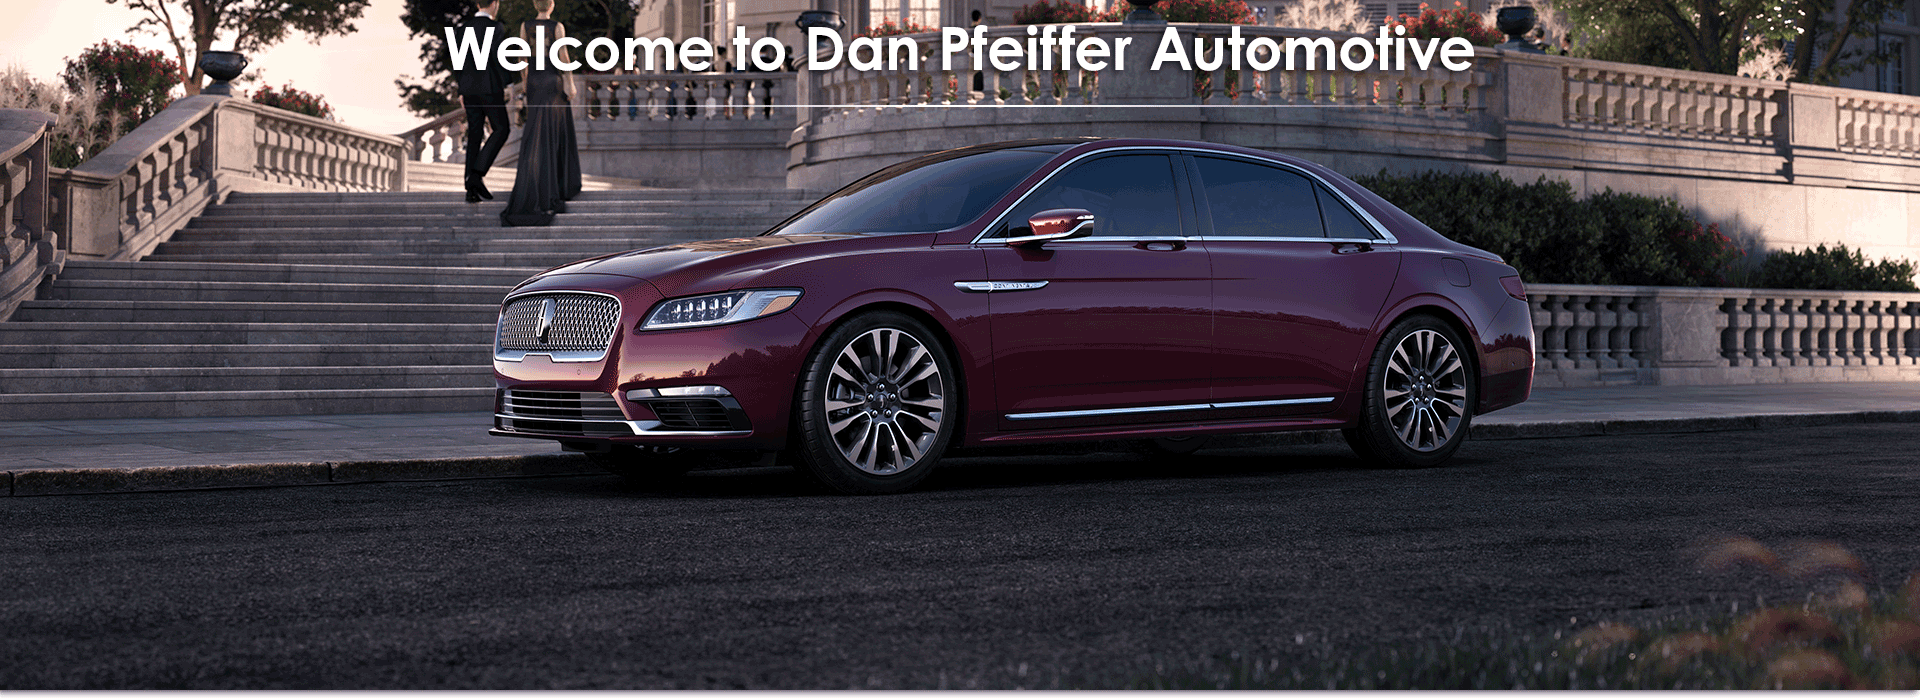 Dan Pfeiffer Automotive